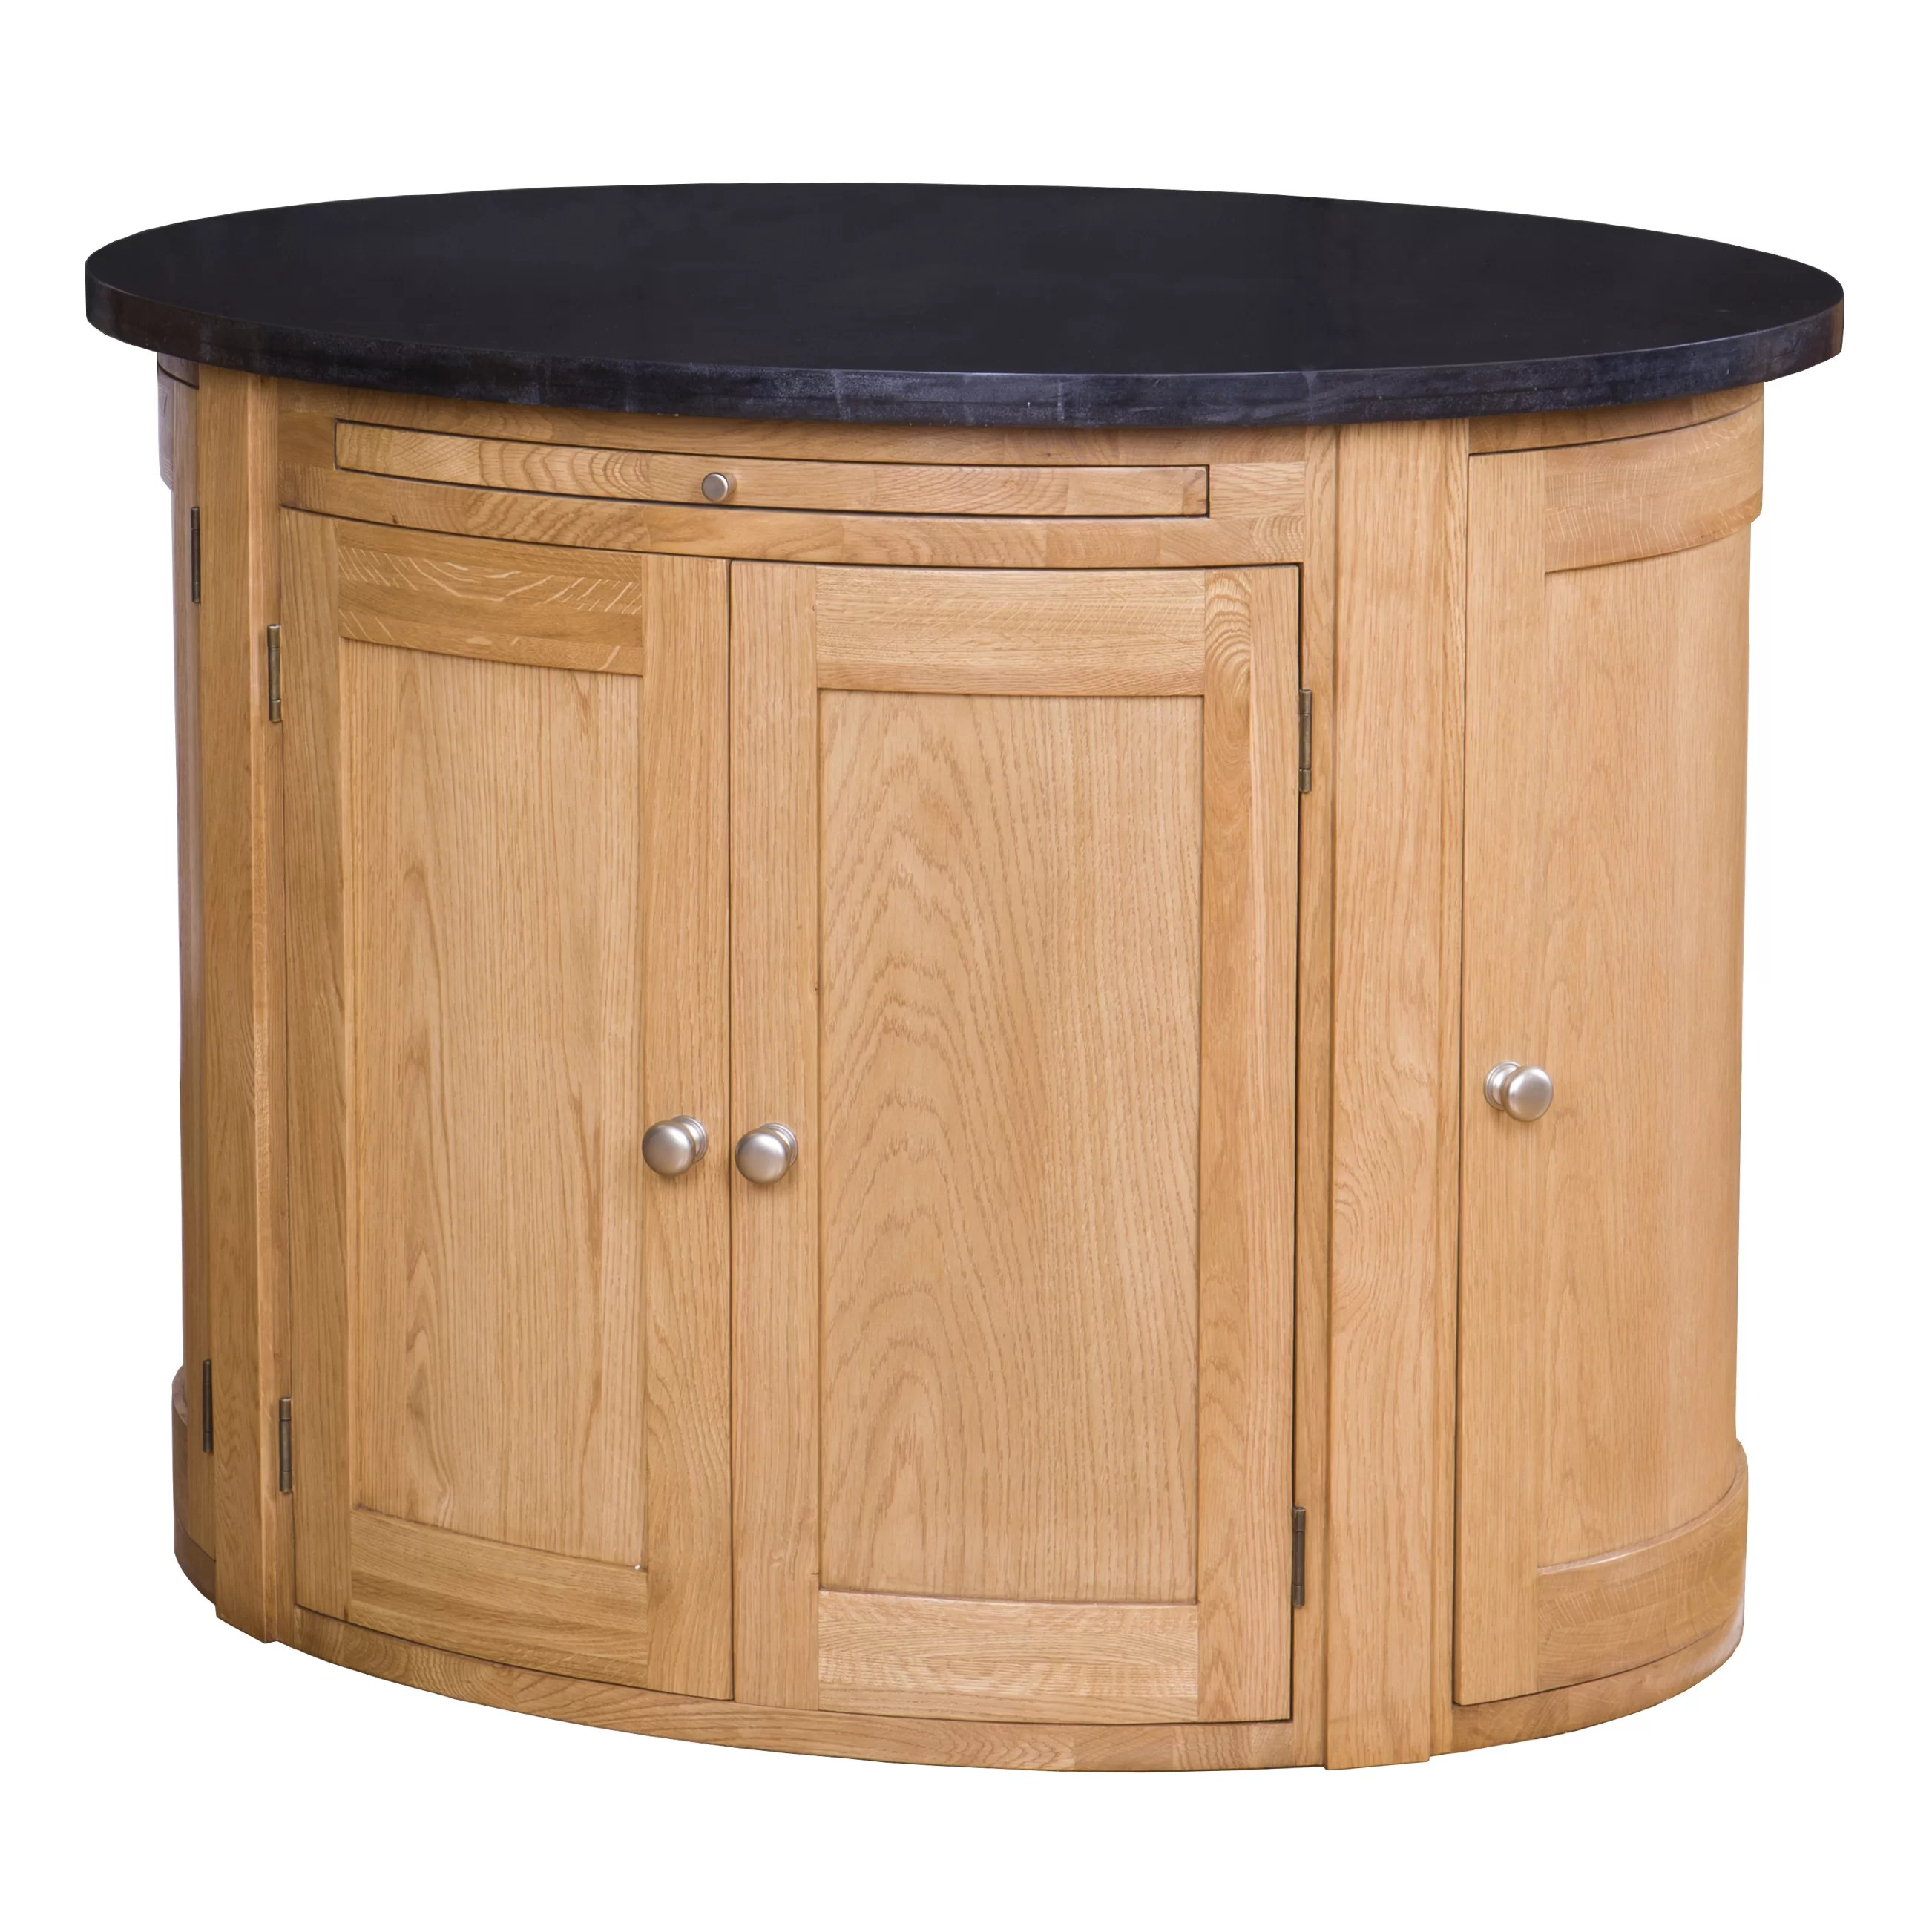 Kücheninsel Oval Creamer Kitchen Island With Granite Top